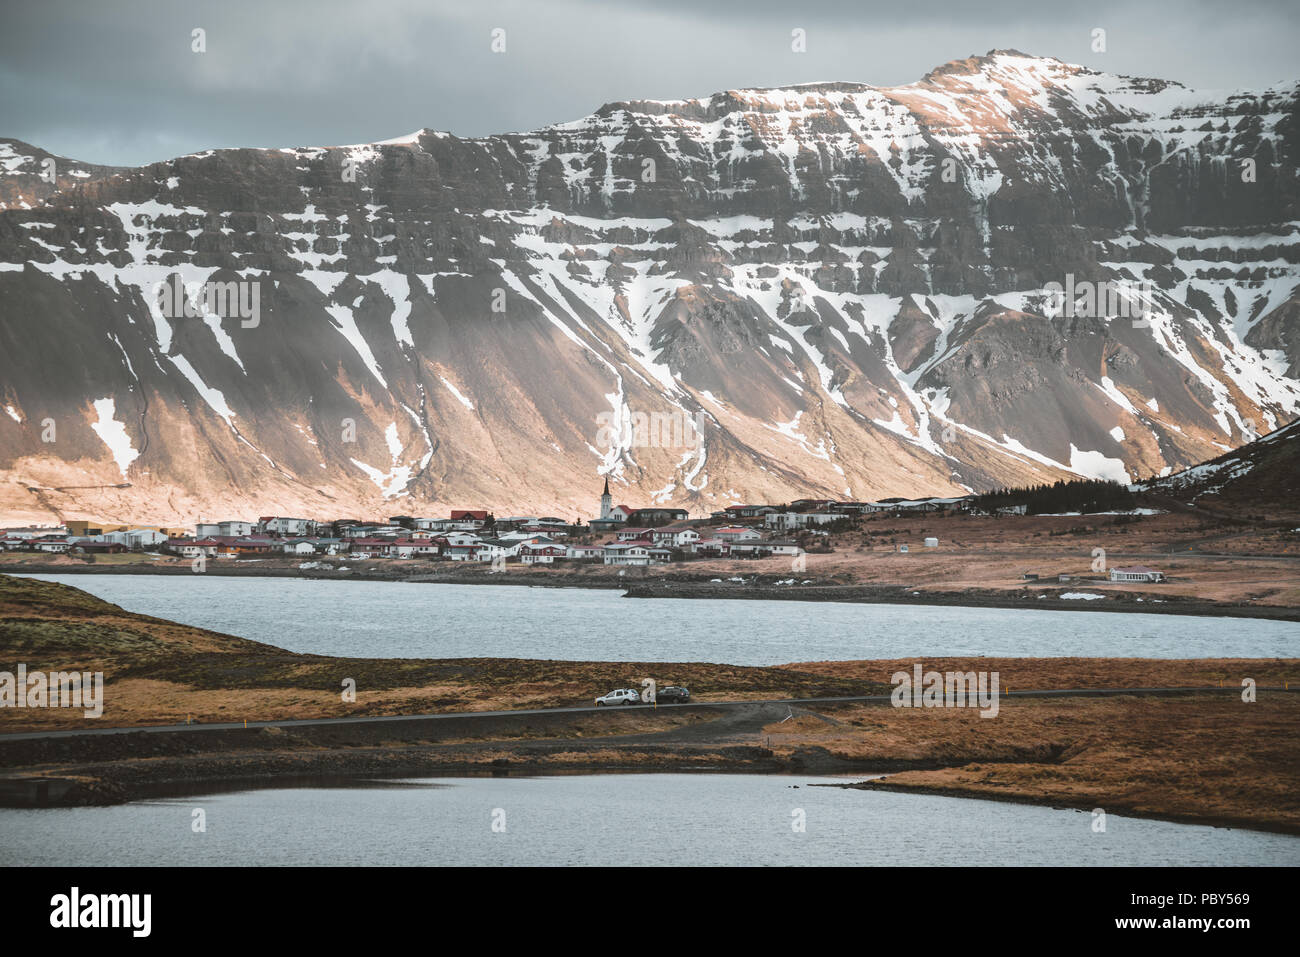 Street Highway Ring road No.1 in Snaefellsnes West Iceland, with view towards mountain. Western side if the country. - Stock Image